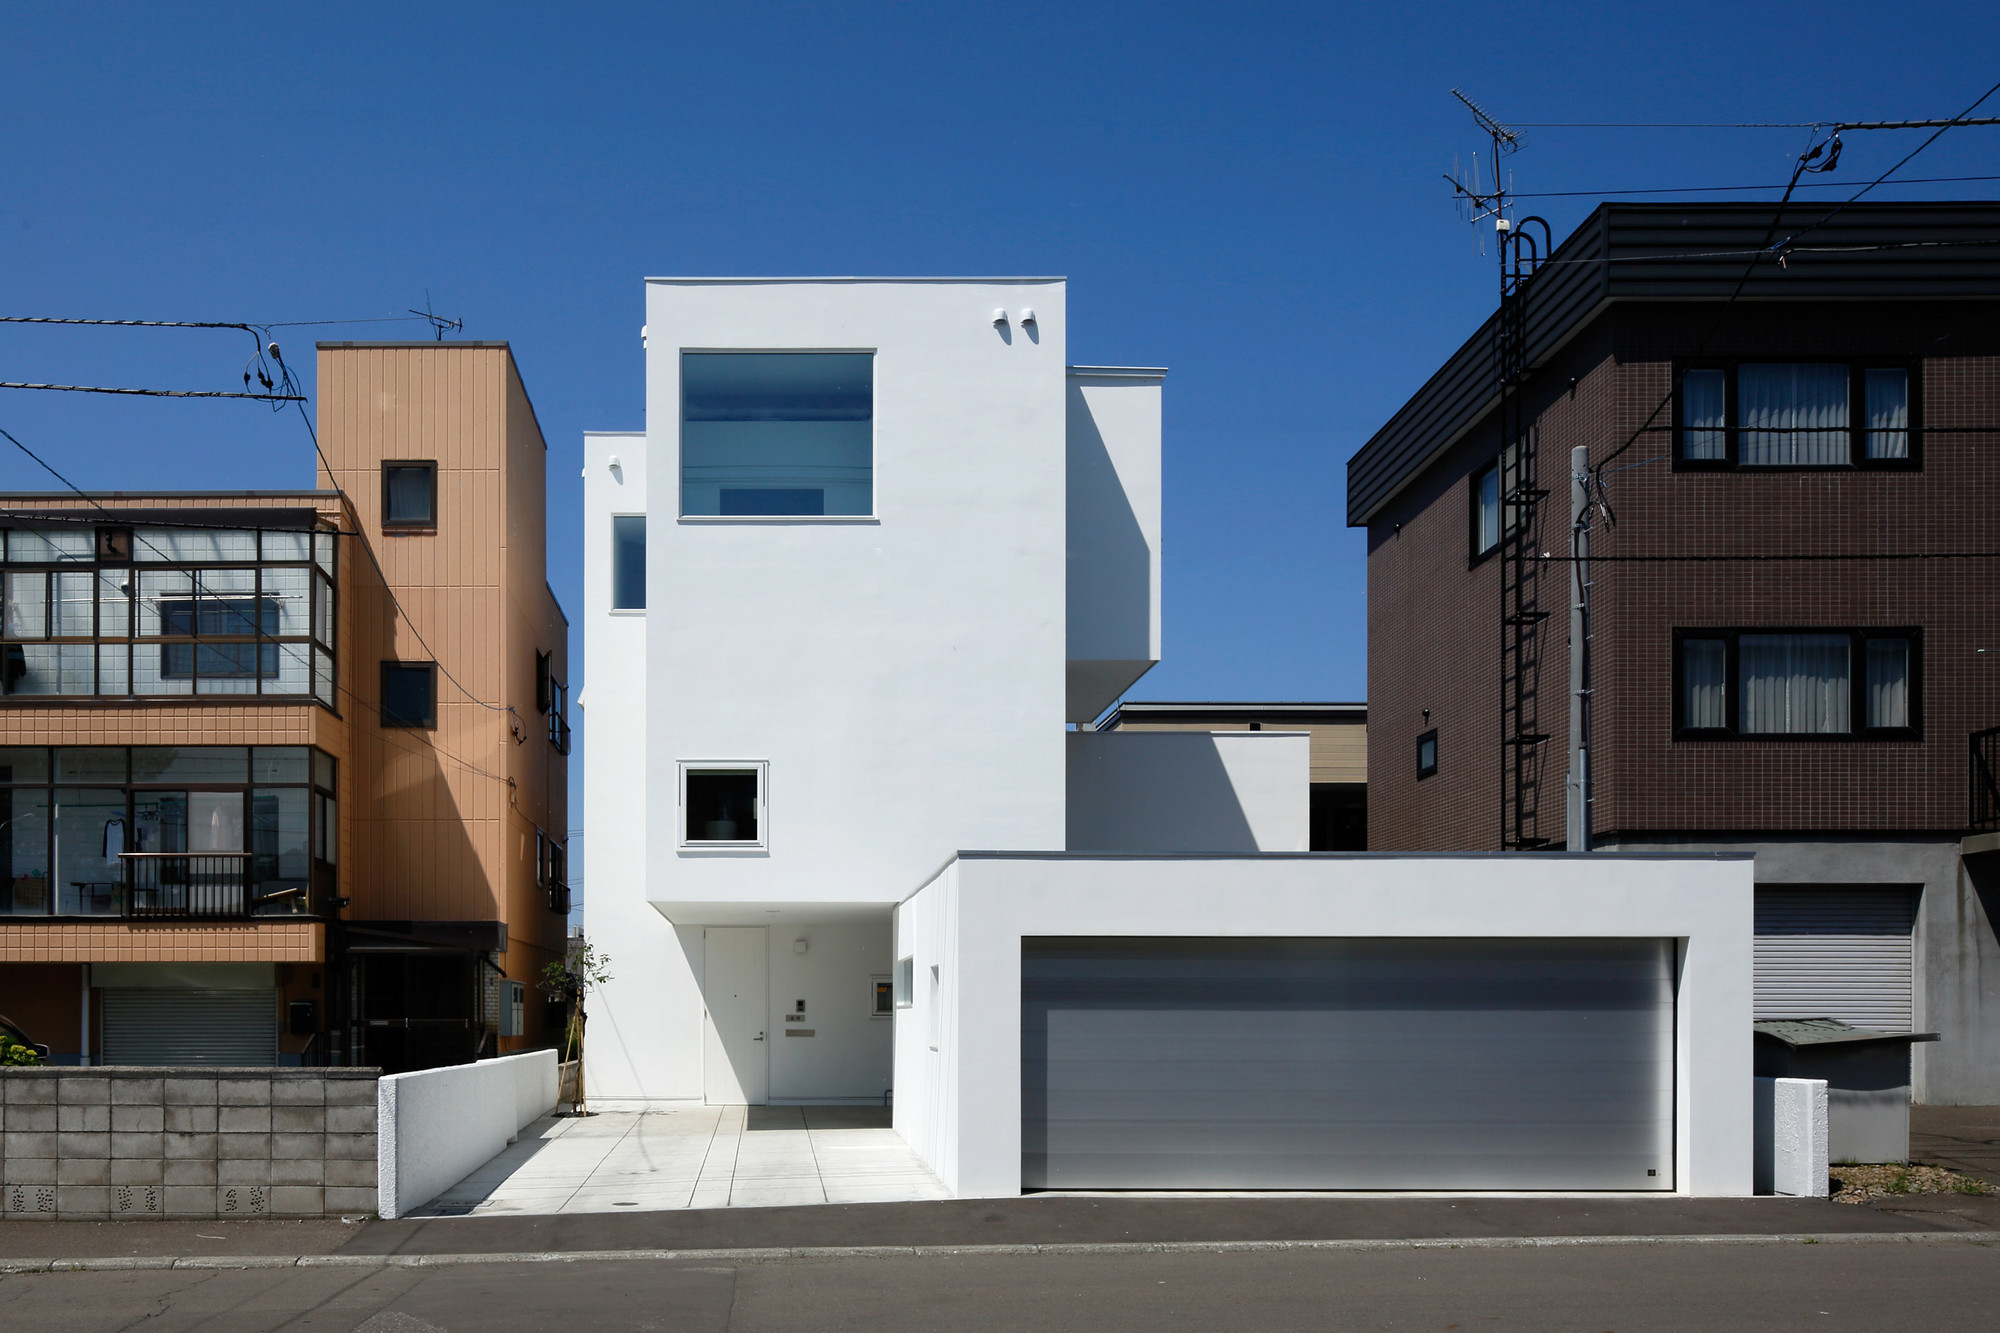 House-K / Keikichi Yamauchi Architect and Associates, © Koji Sakai